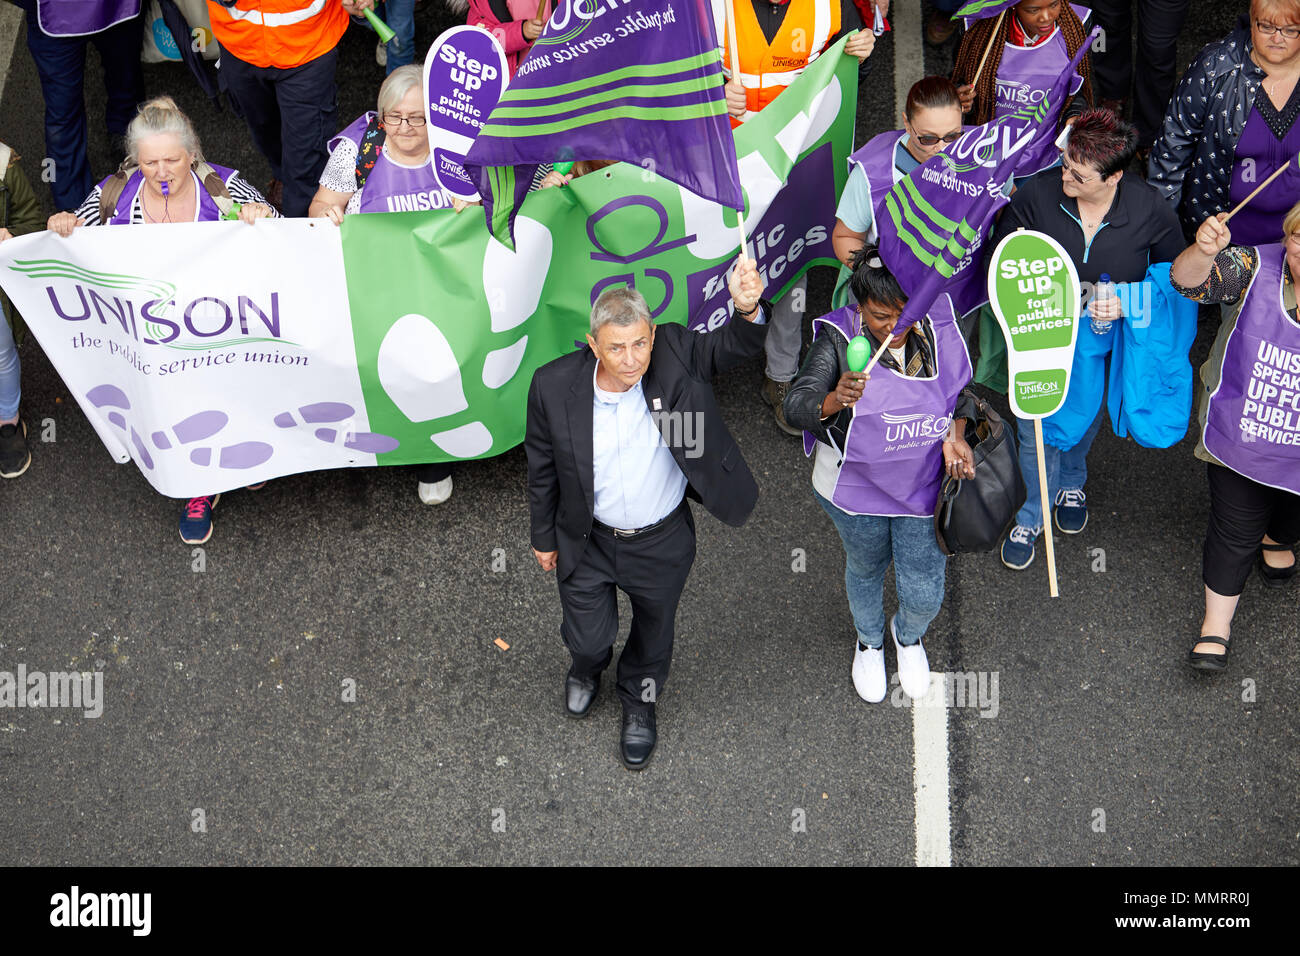 Dave Prentis leads UNISON marchers at the TUC march and rally in London, 12 May 2018. - Stock Image